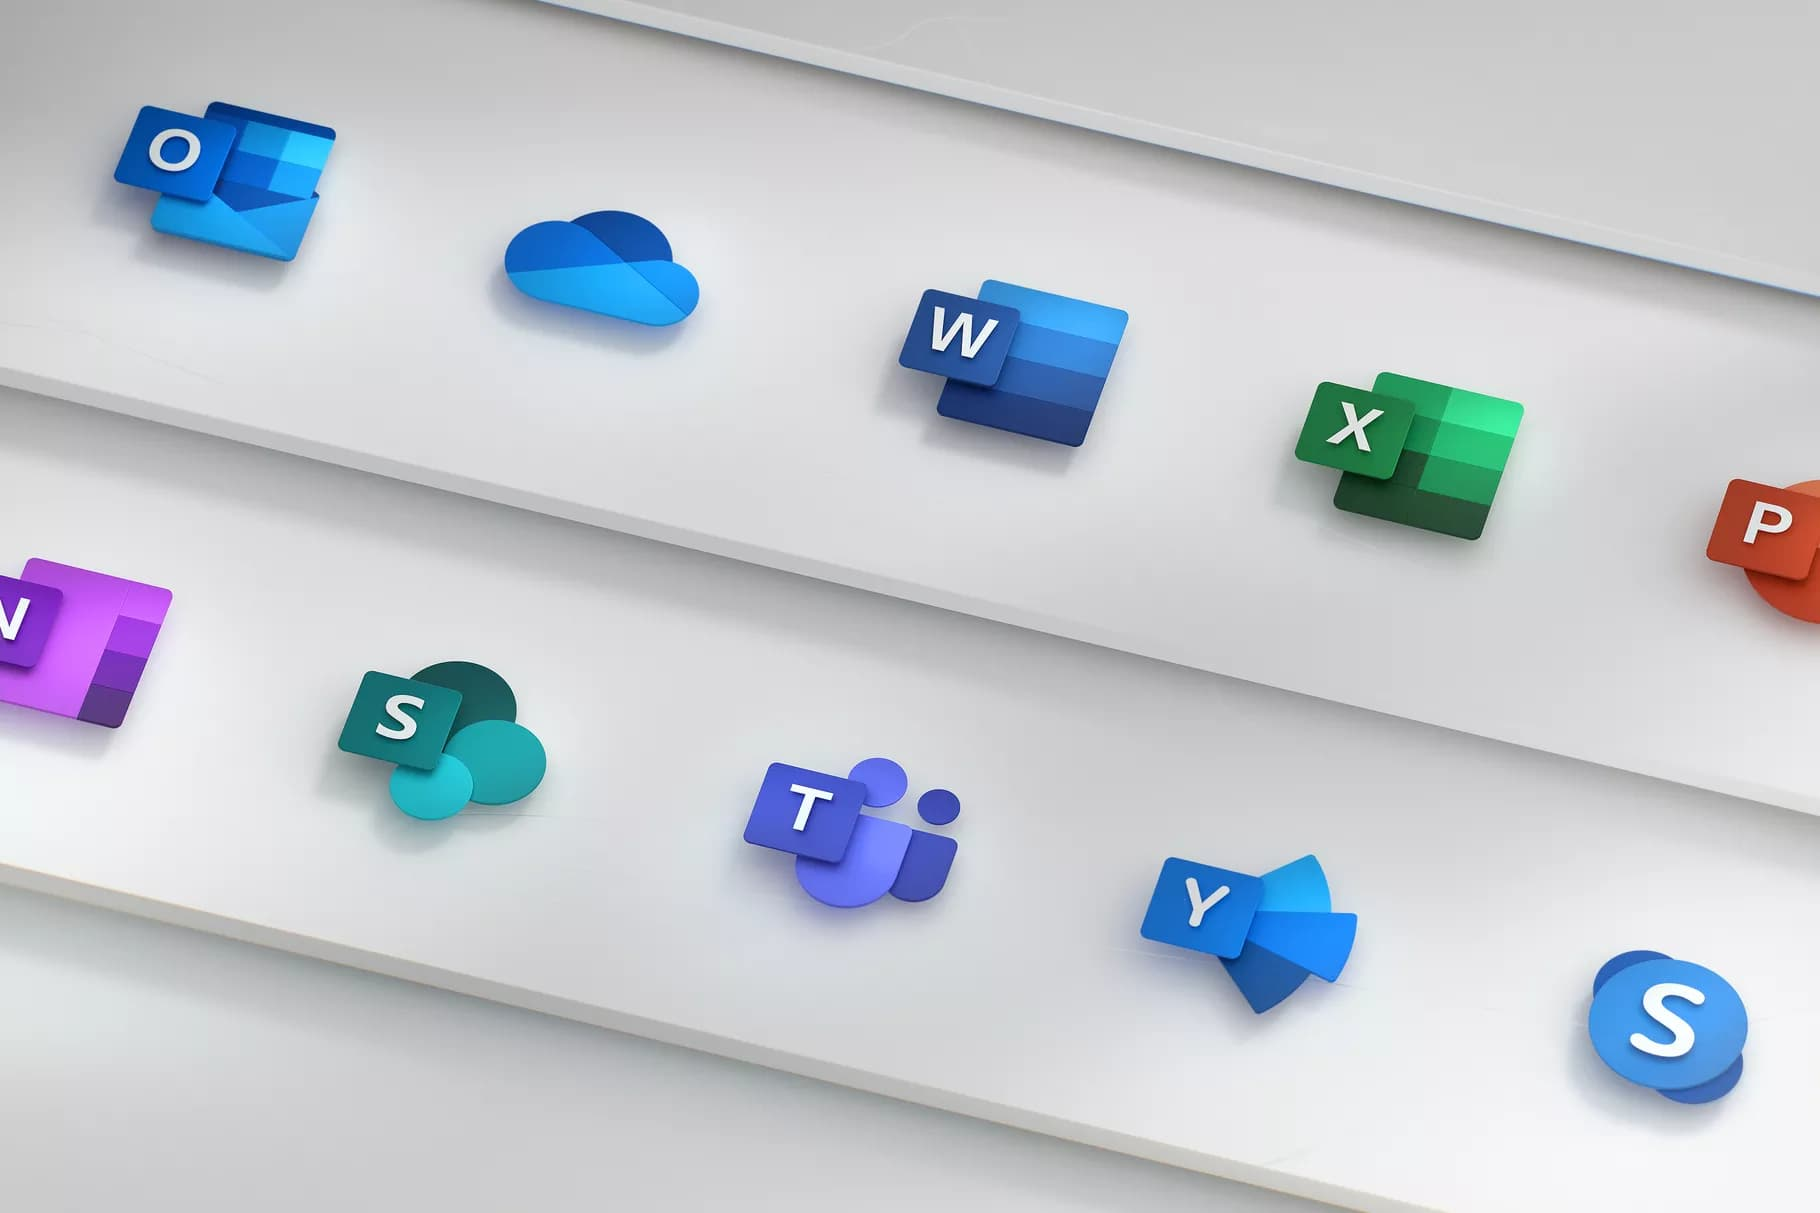 Microsoft announces Office 2021 launching for macOS and Windows later in 2021